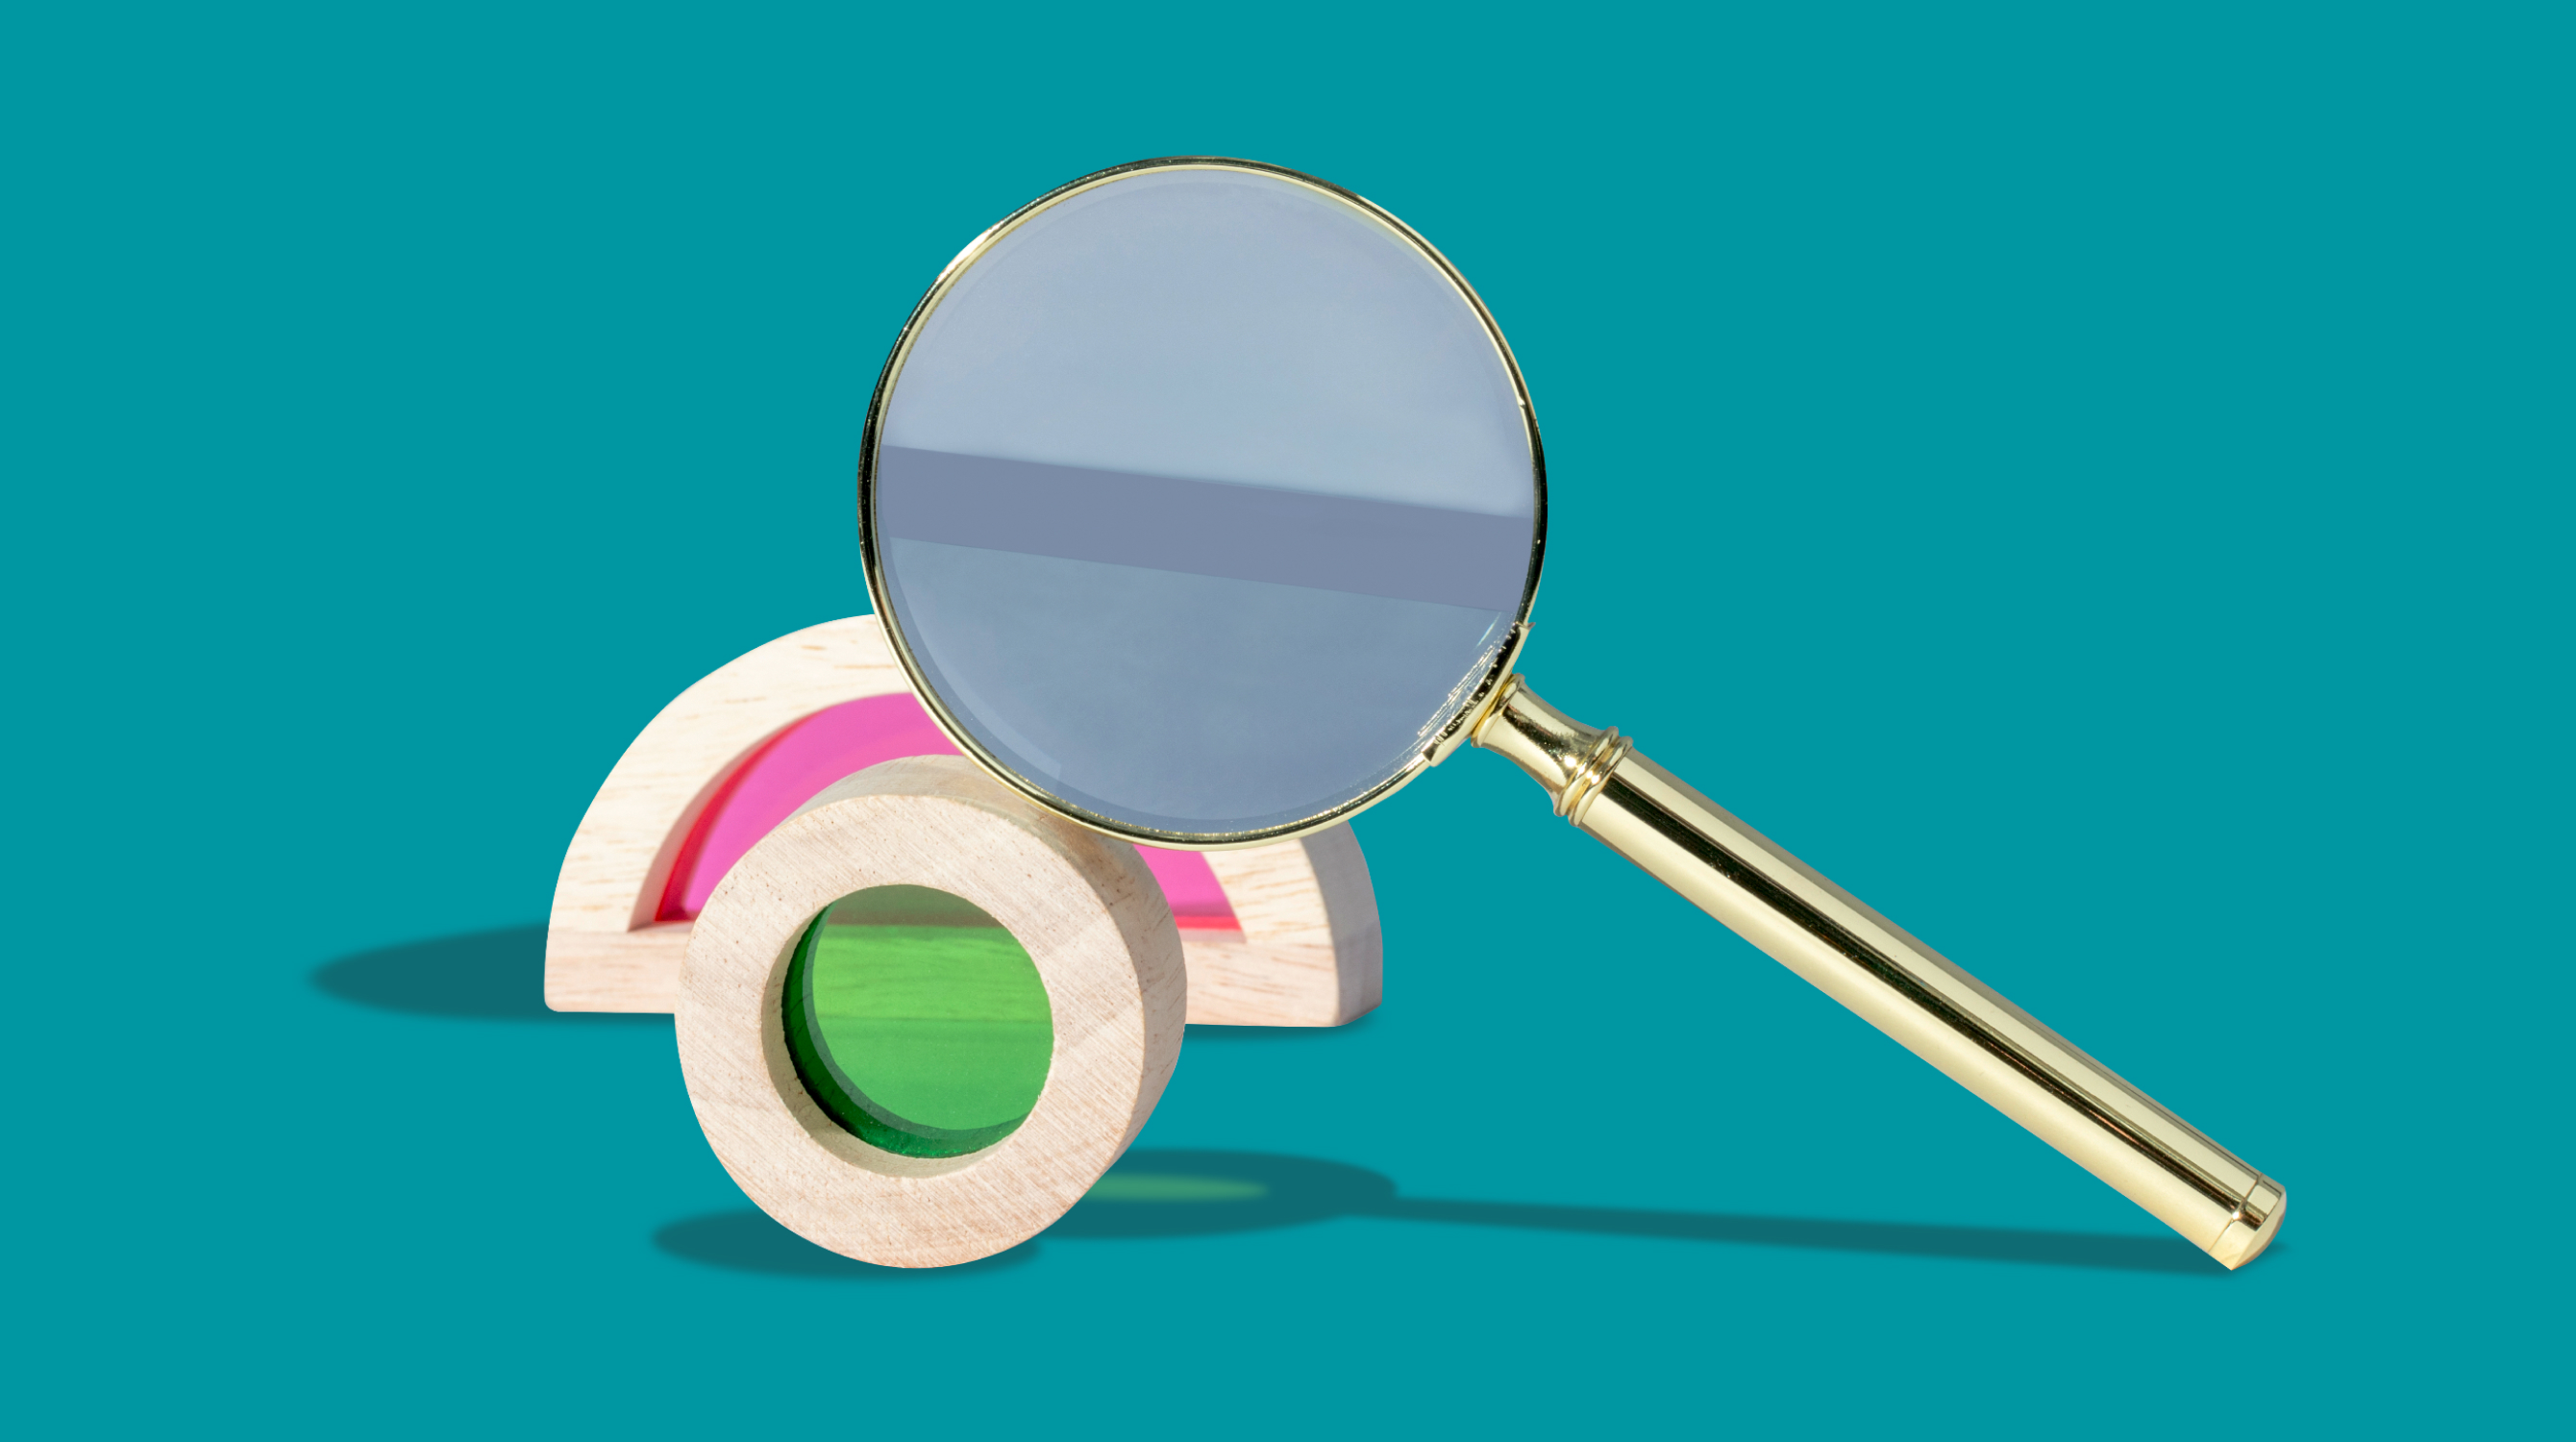 Magnifying glass next to green and pink shapes